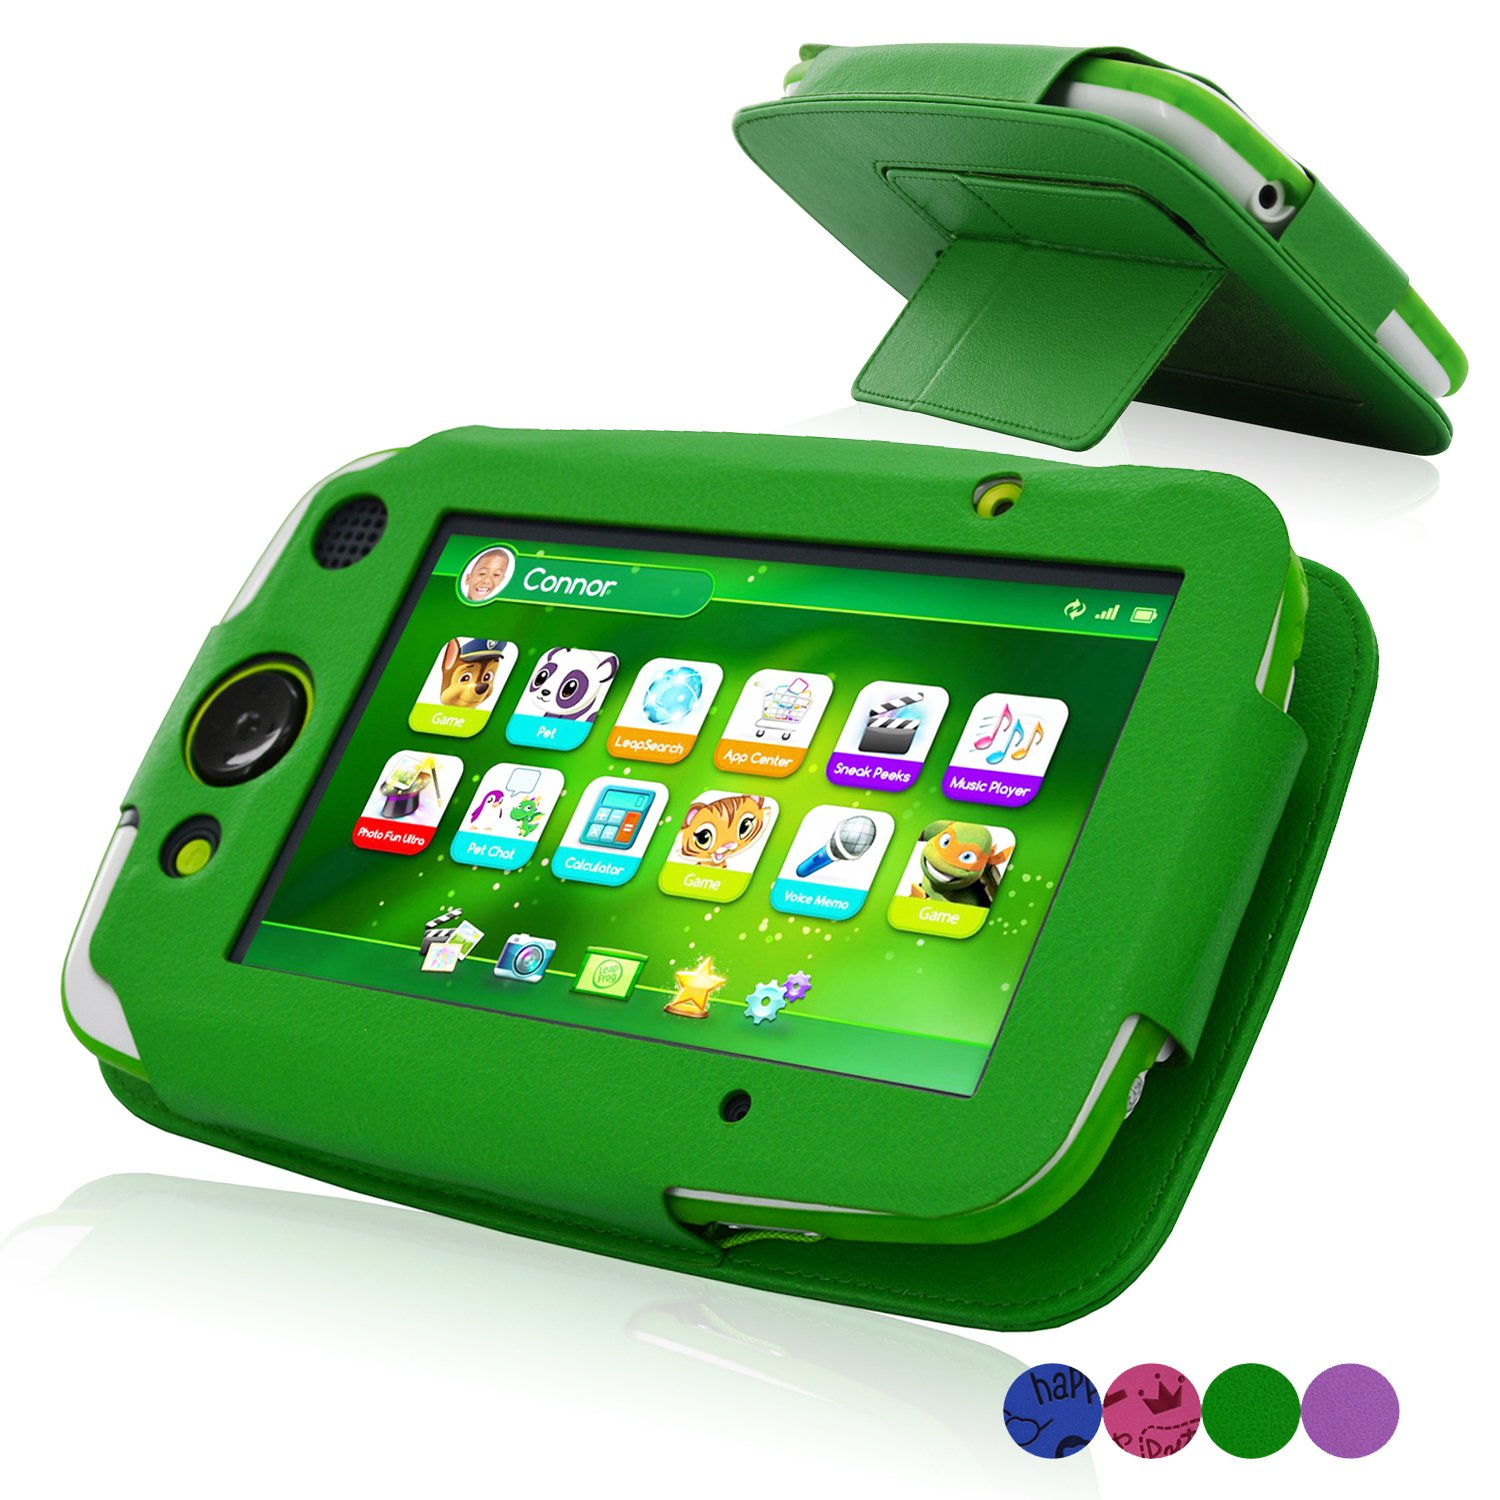 ACdream LeapPad Platinum Case, PU Leather Cover Case for LeapFrog LeapPad Platinum Kids Learning Tablet (NOT FIT LeapPad3), Green by ACdream (Image #1)